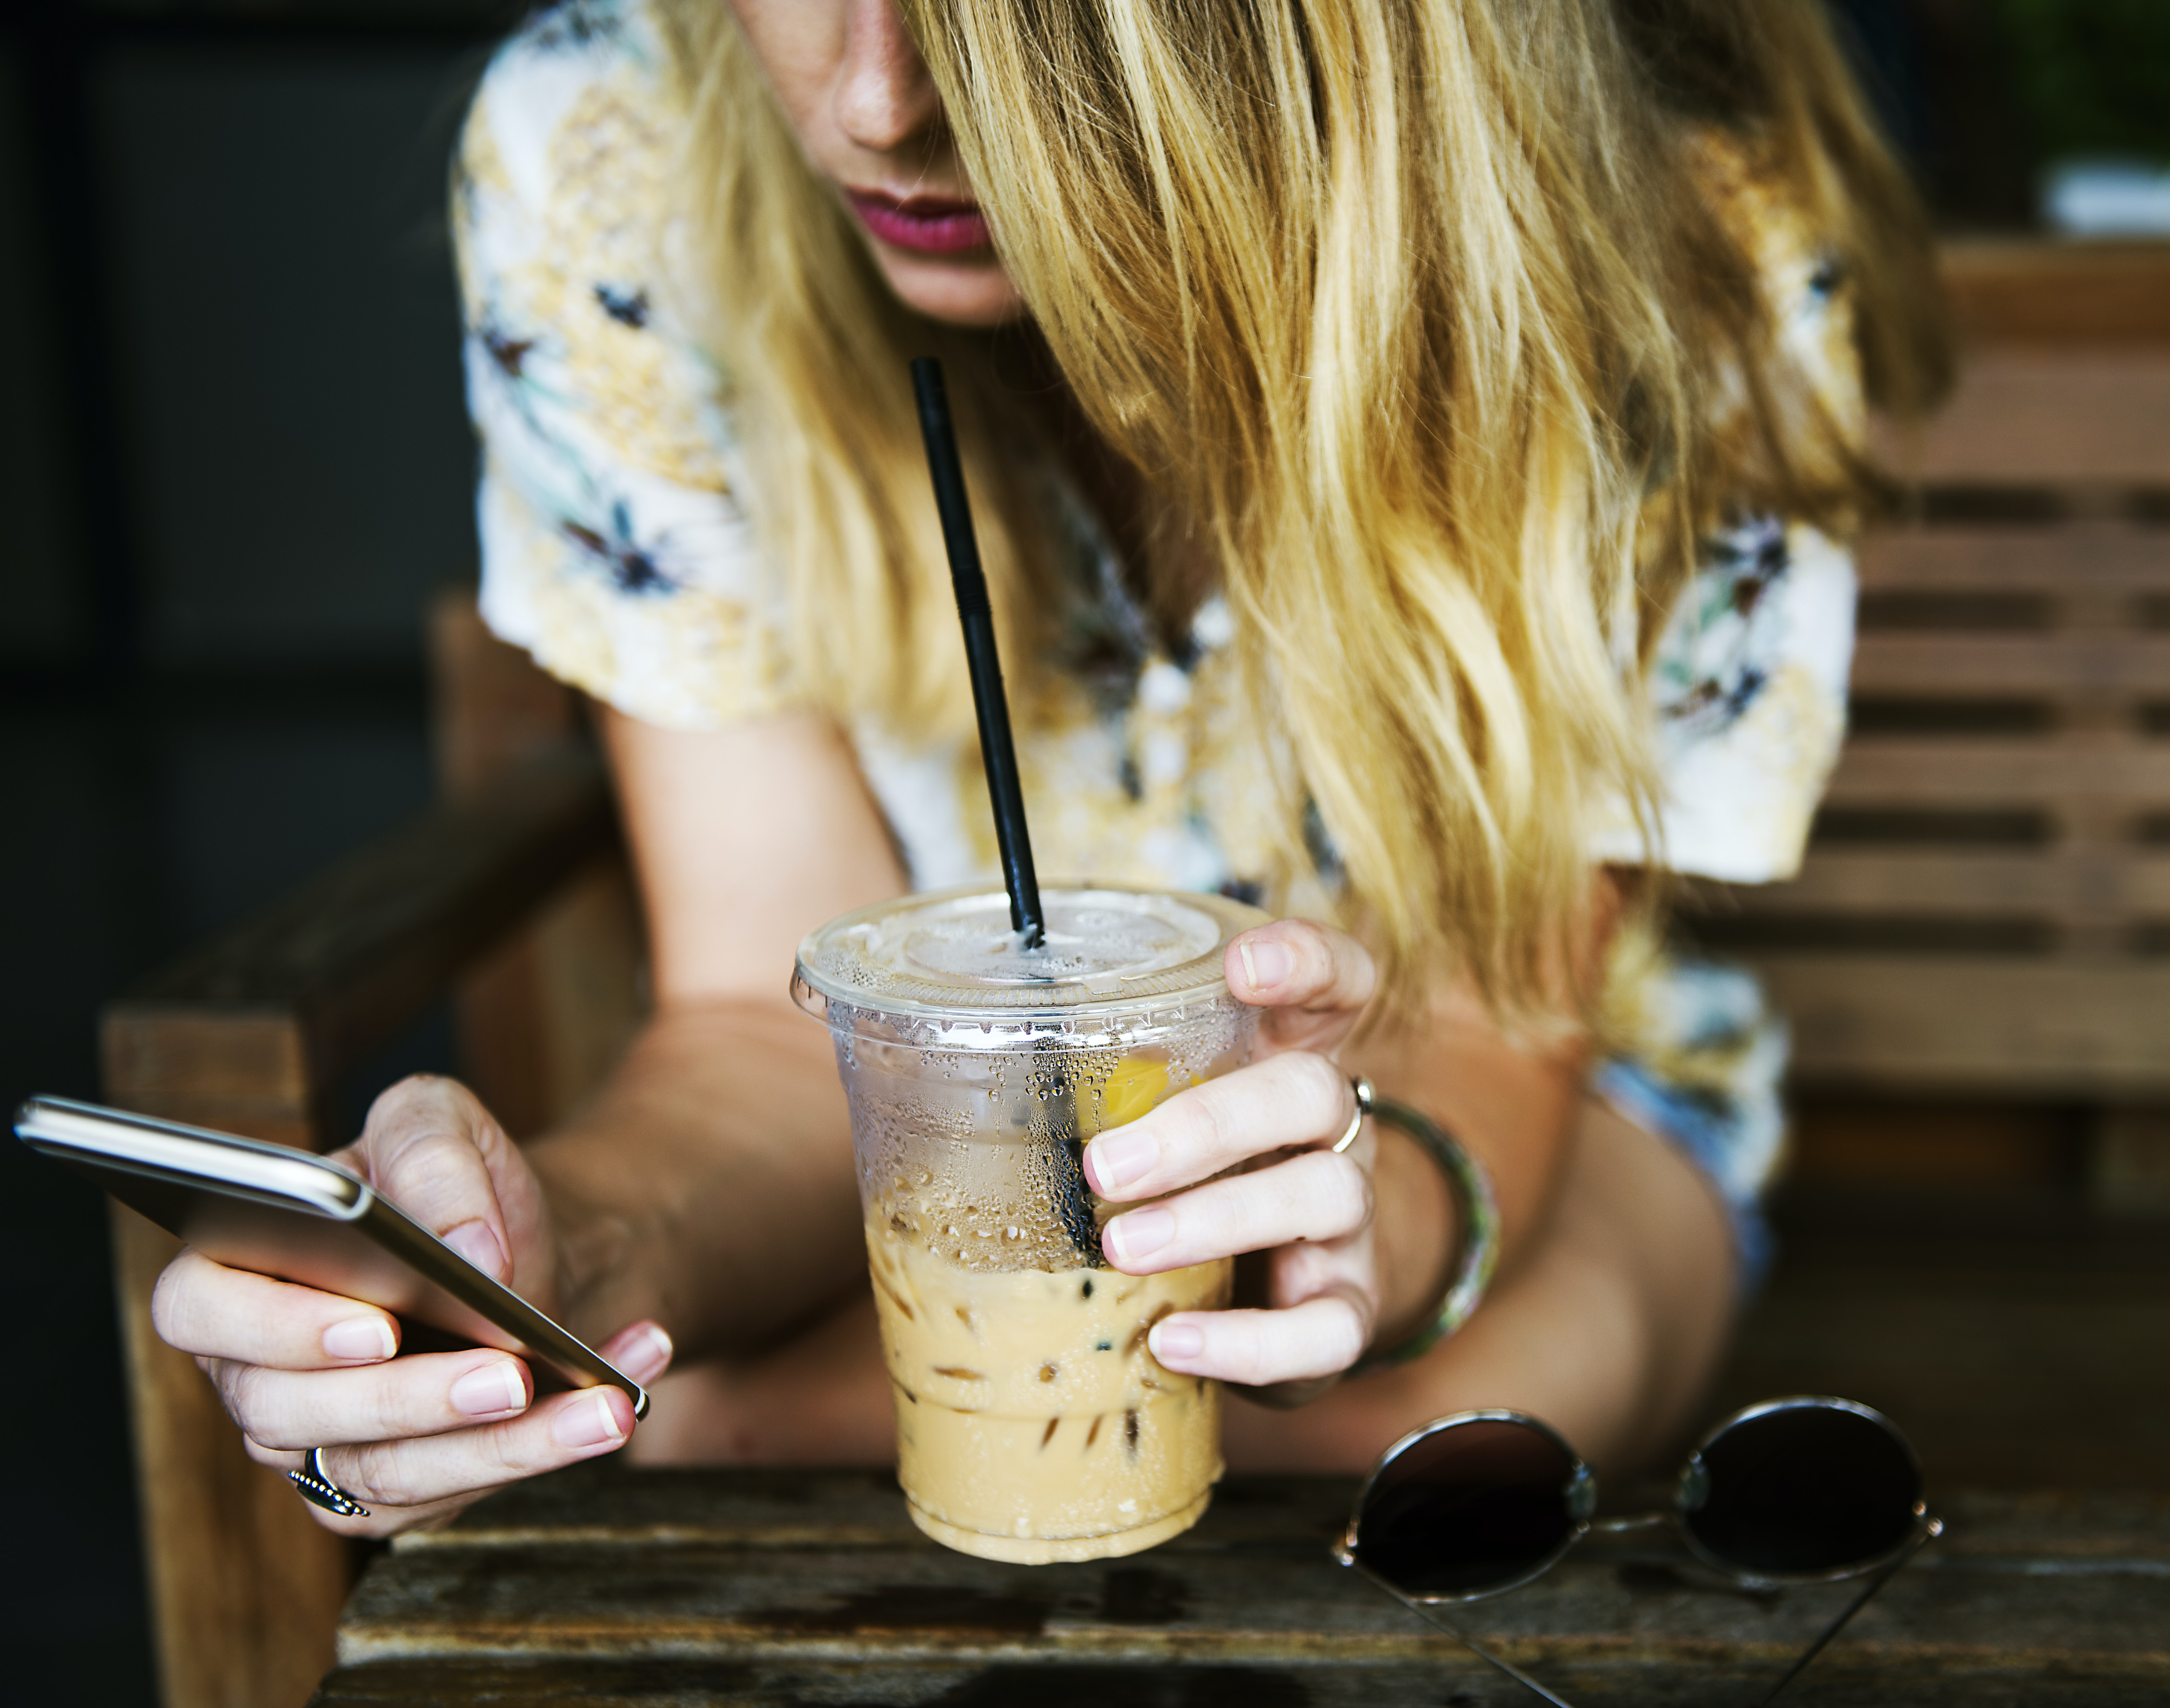 shallow focus photography of woman holding clear plastic disposable drinking cup while using smartphone